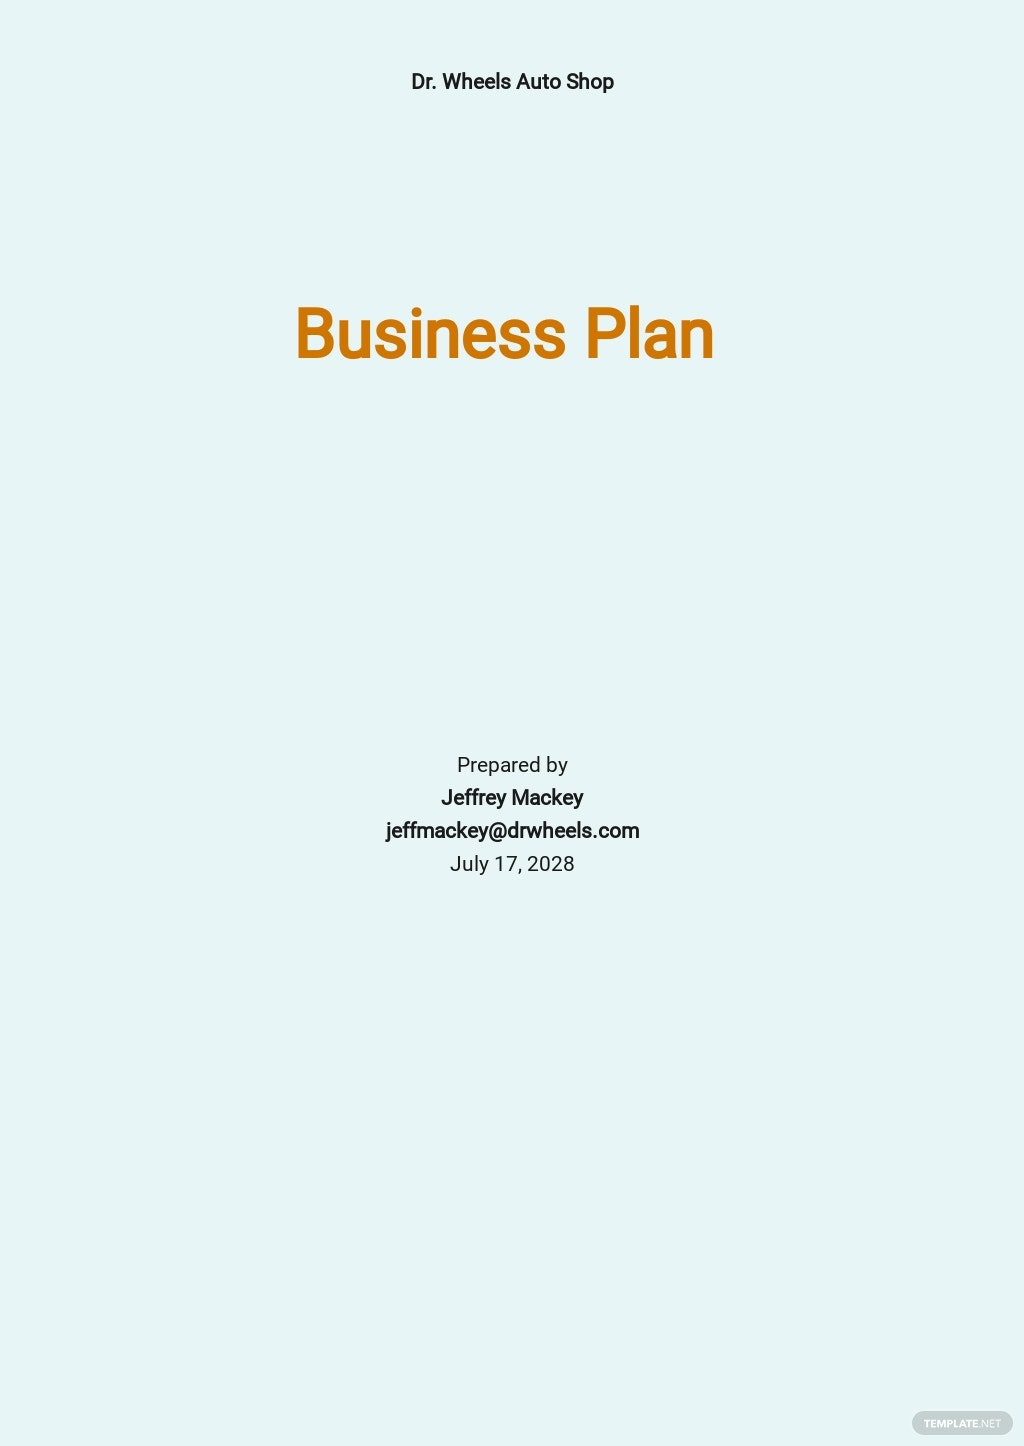 Auto Repair Service Business Plan Template.jpe